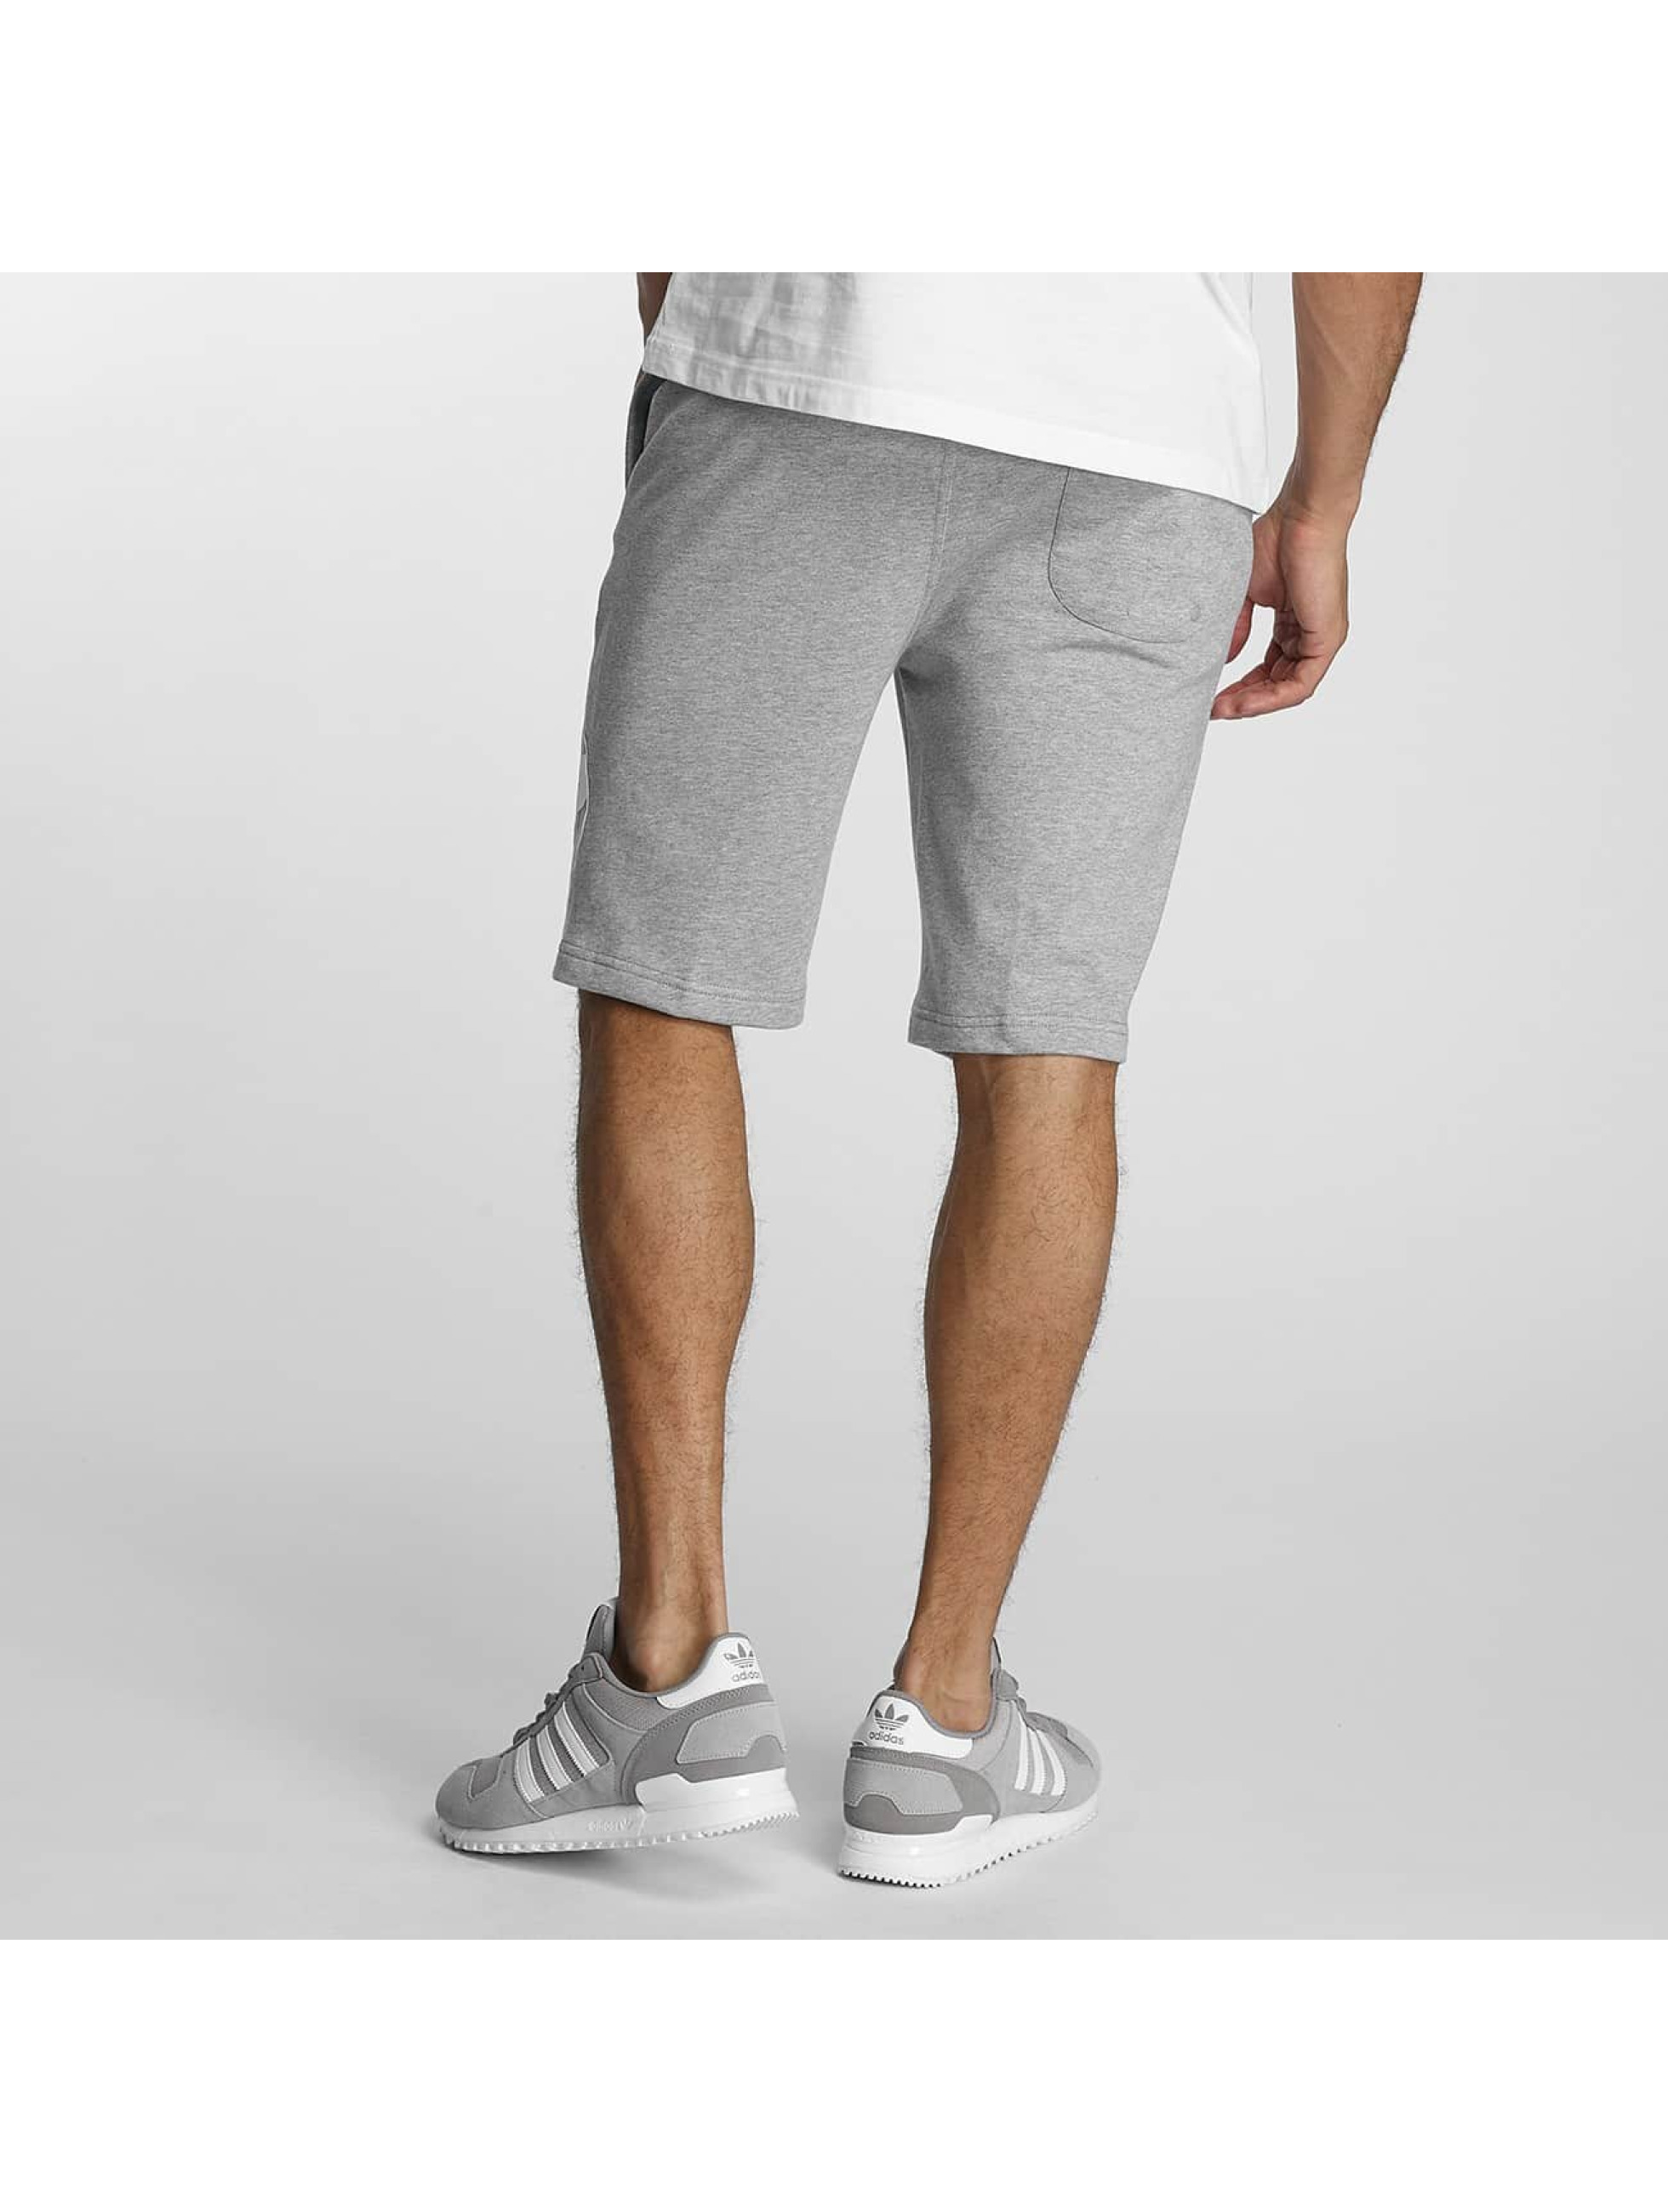 Pusher Apparel Shorts 219 Cut grau